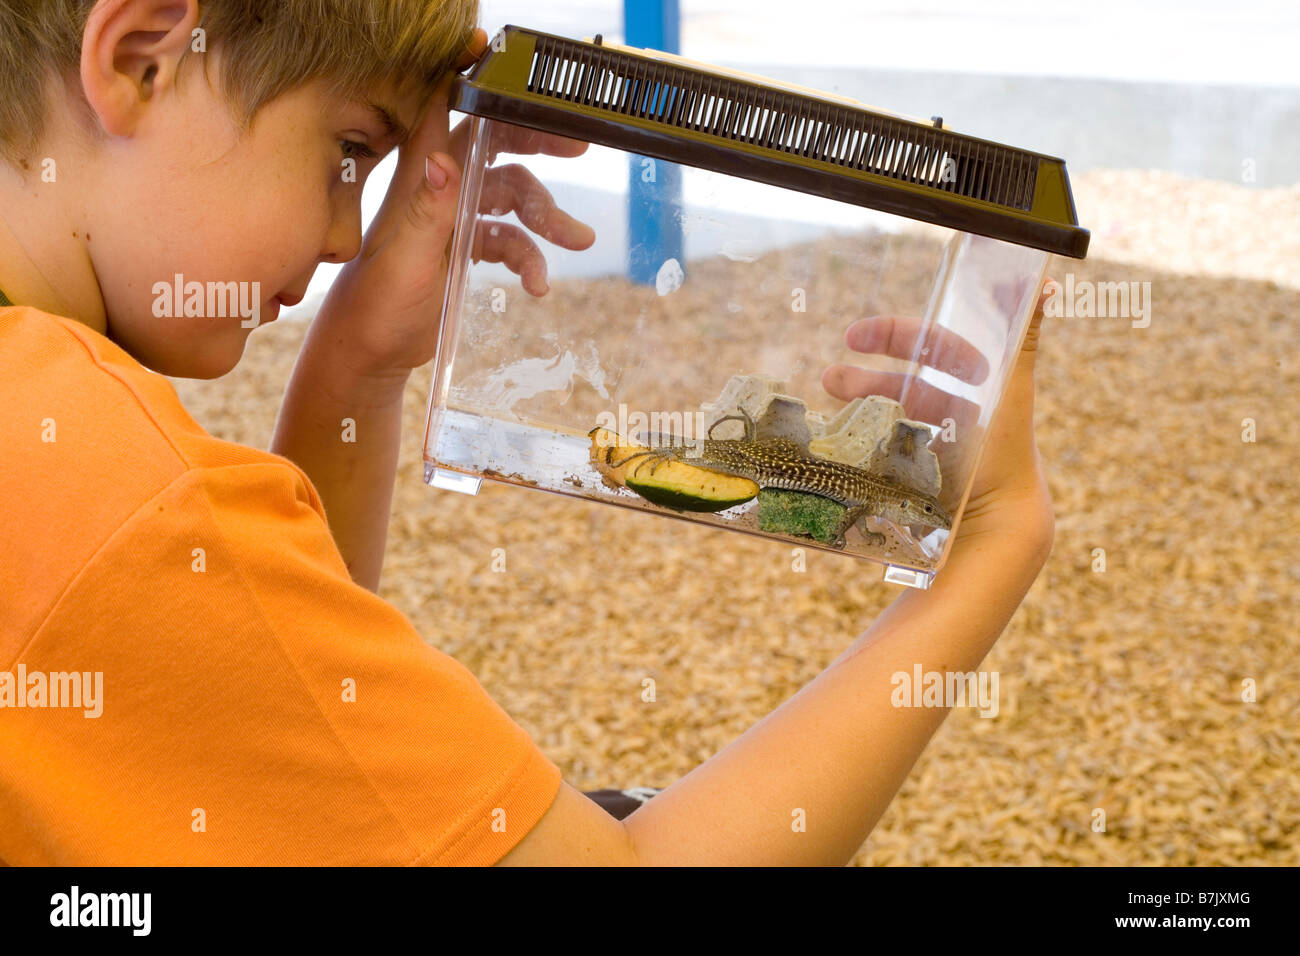 eight year old boy holding plastic cage with captured lizard, southwestern united states - Stock Image